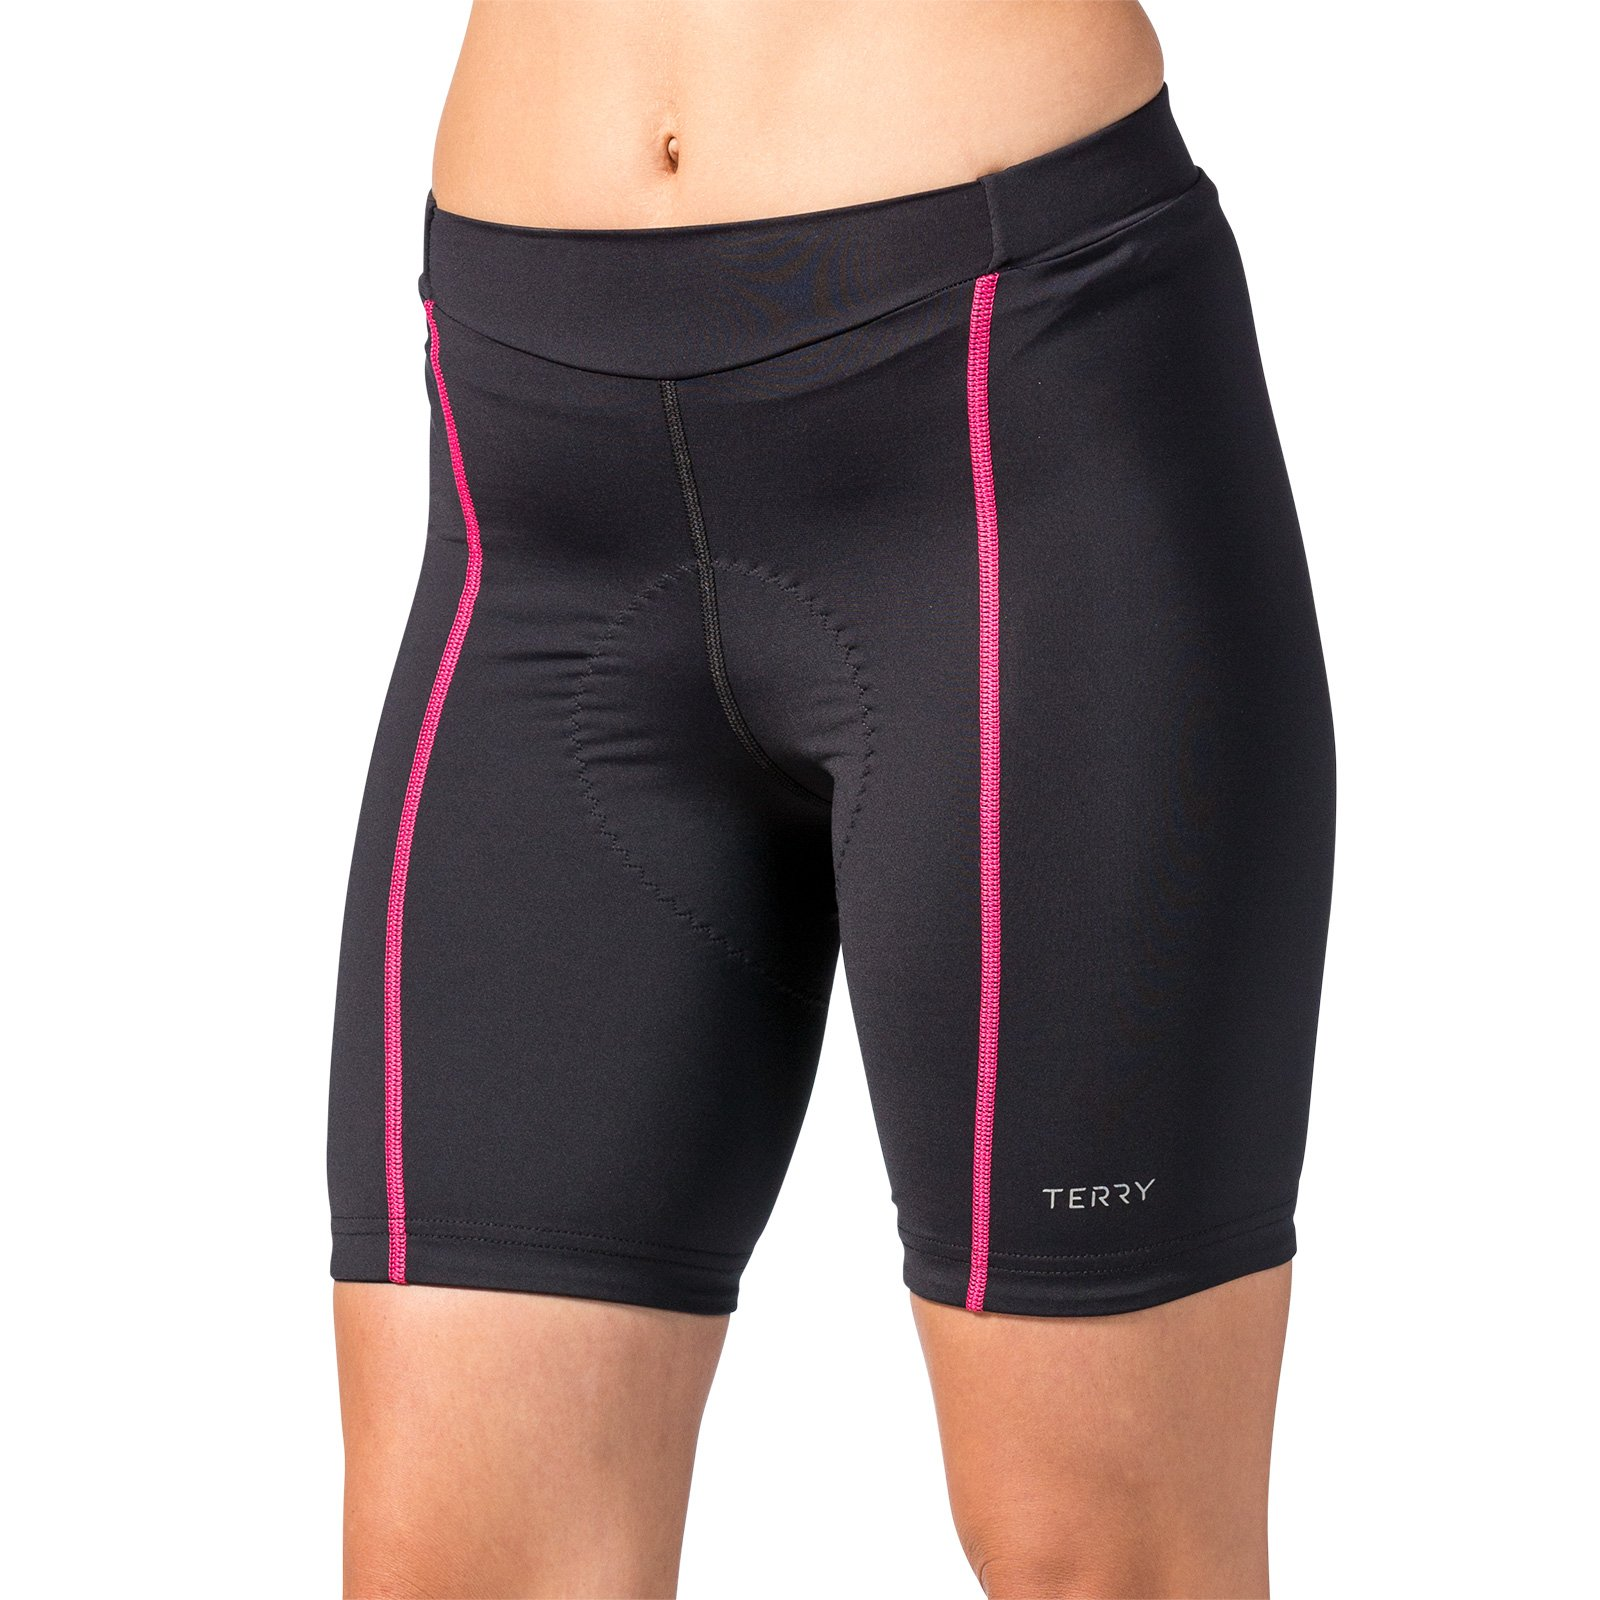 Terry Women's Bella Short - Black/Pink - Large by Terry